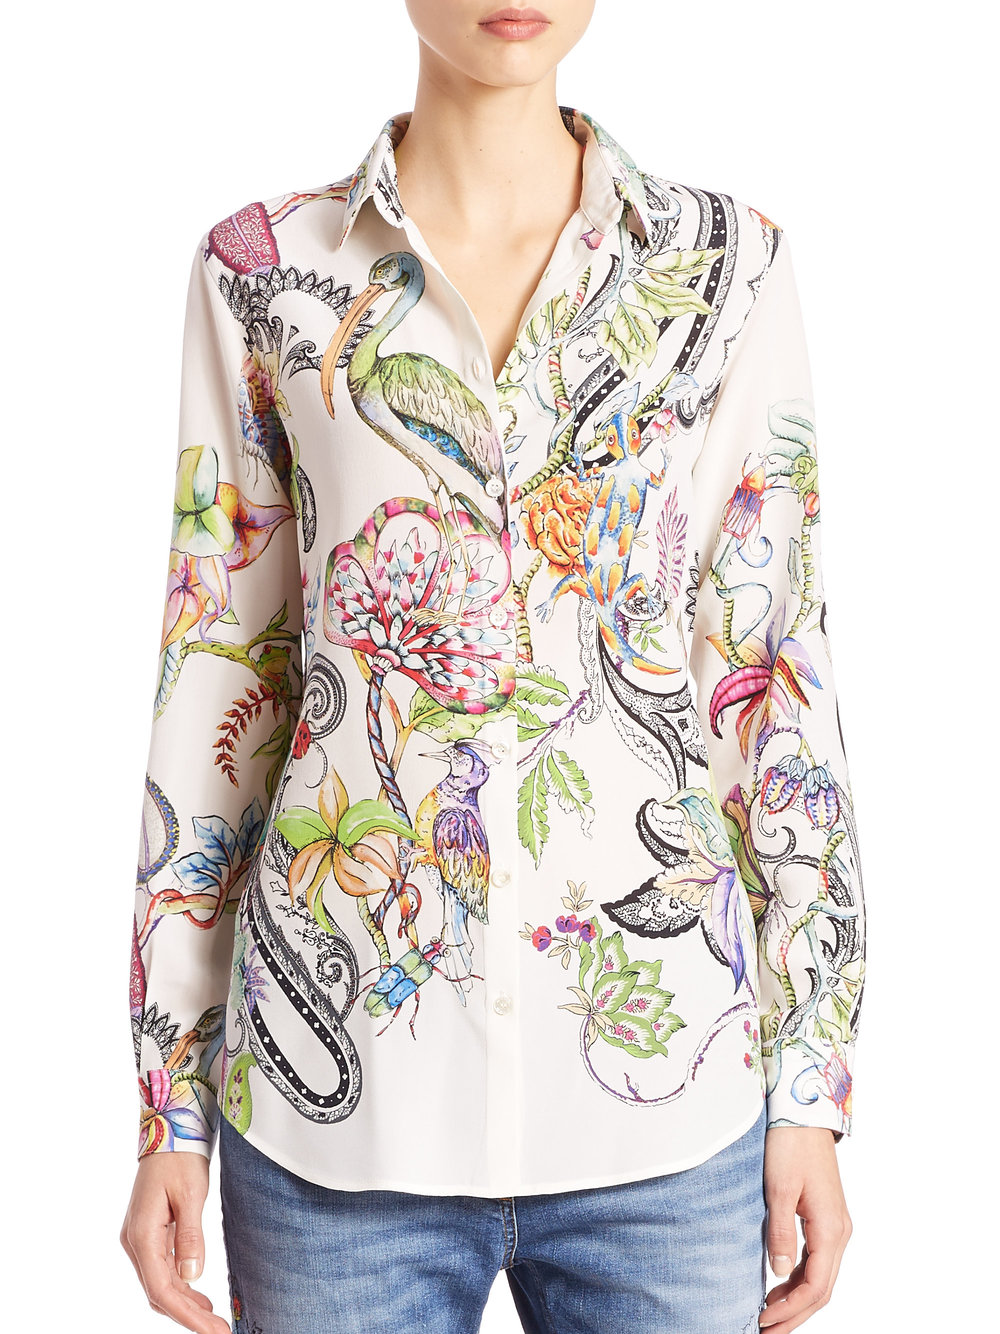 etro-white-silk-wildlife-print-shirt-product-0-003198085-normal.jpg